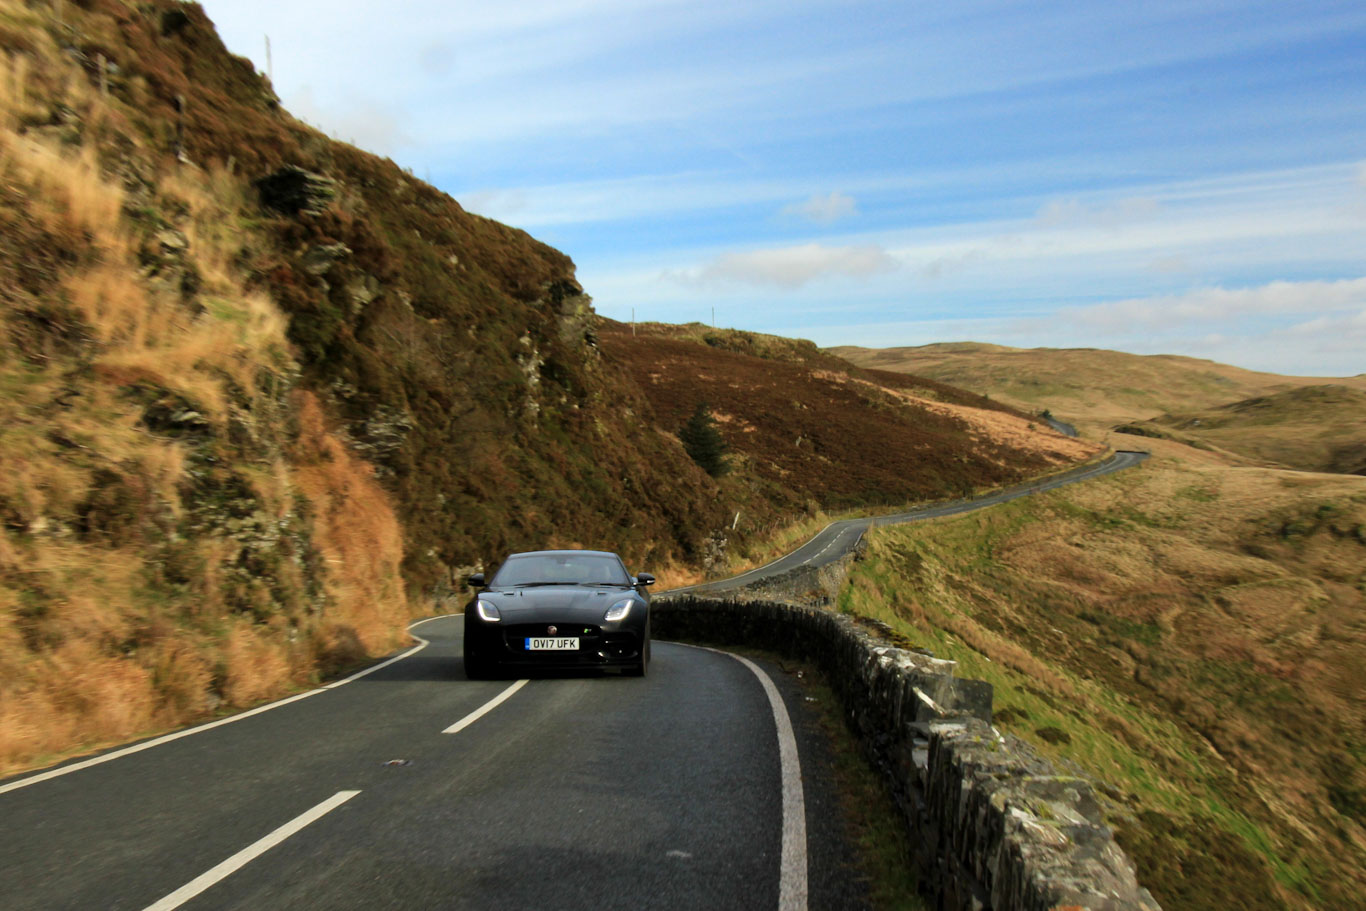 Scenic Drives UK - A44 Wales